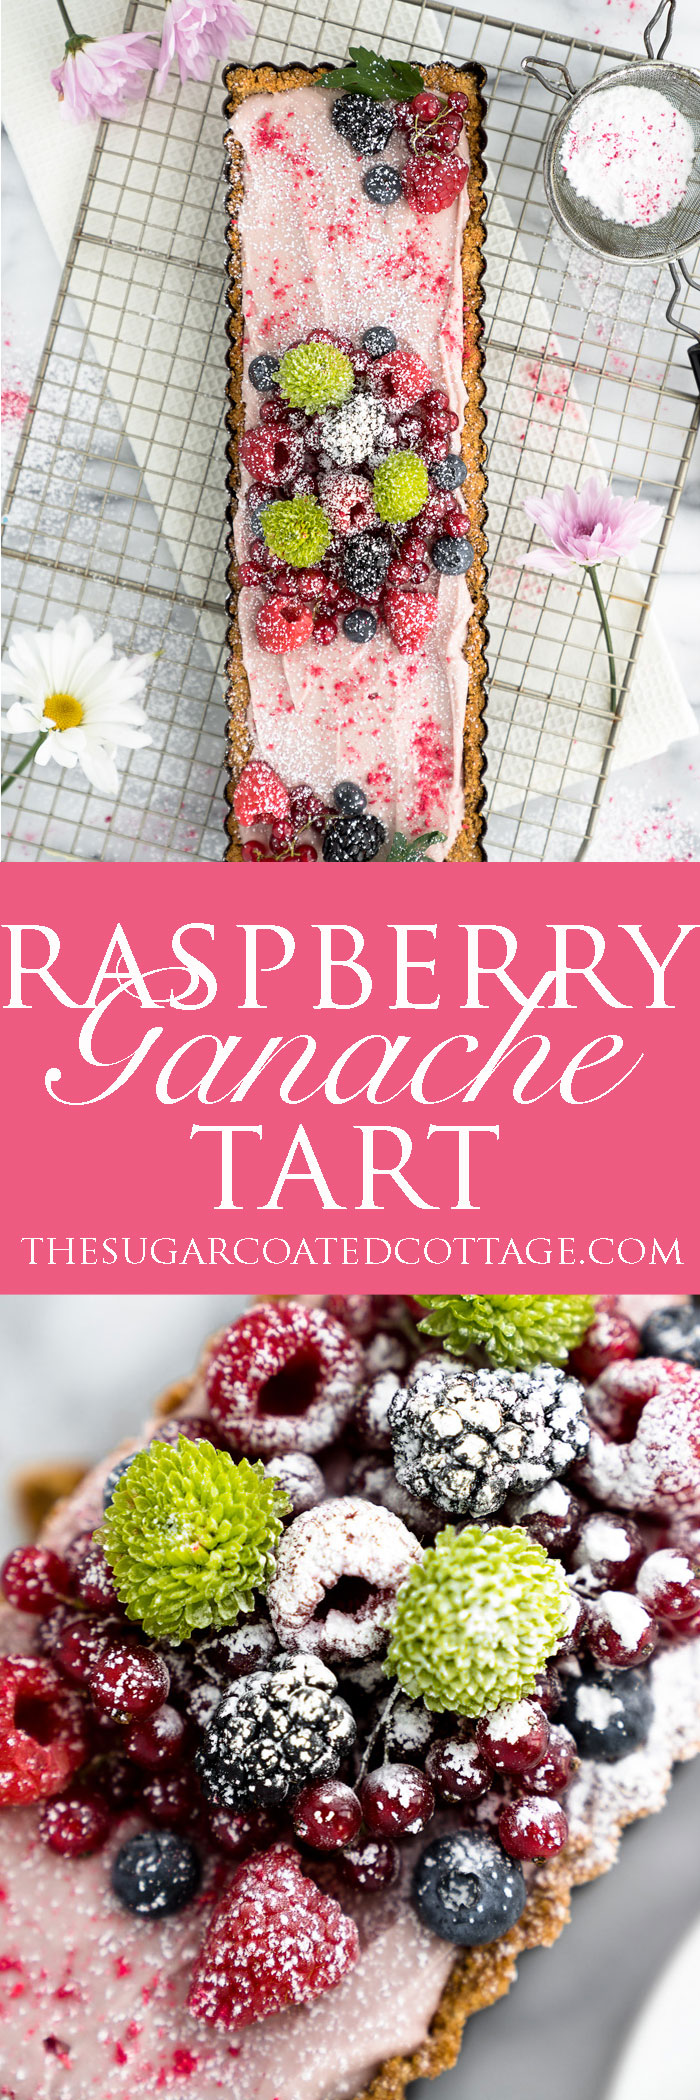 Raspberry Ganache Tart recipe. Smooth, rich and creamy raspberry ganache wrapped in a crunchy cookie crust. | thesugarcoatedcottage.com